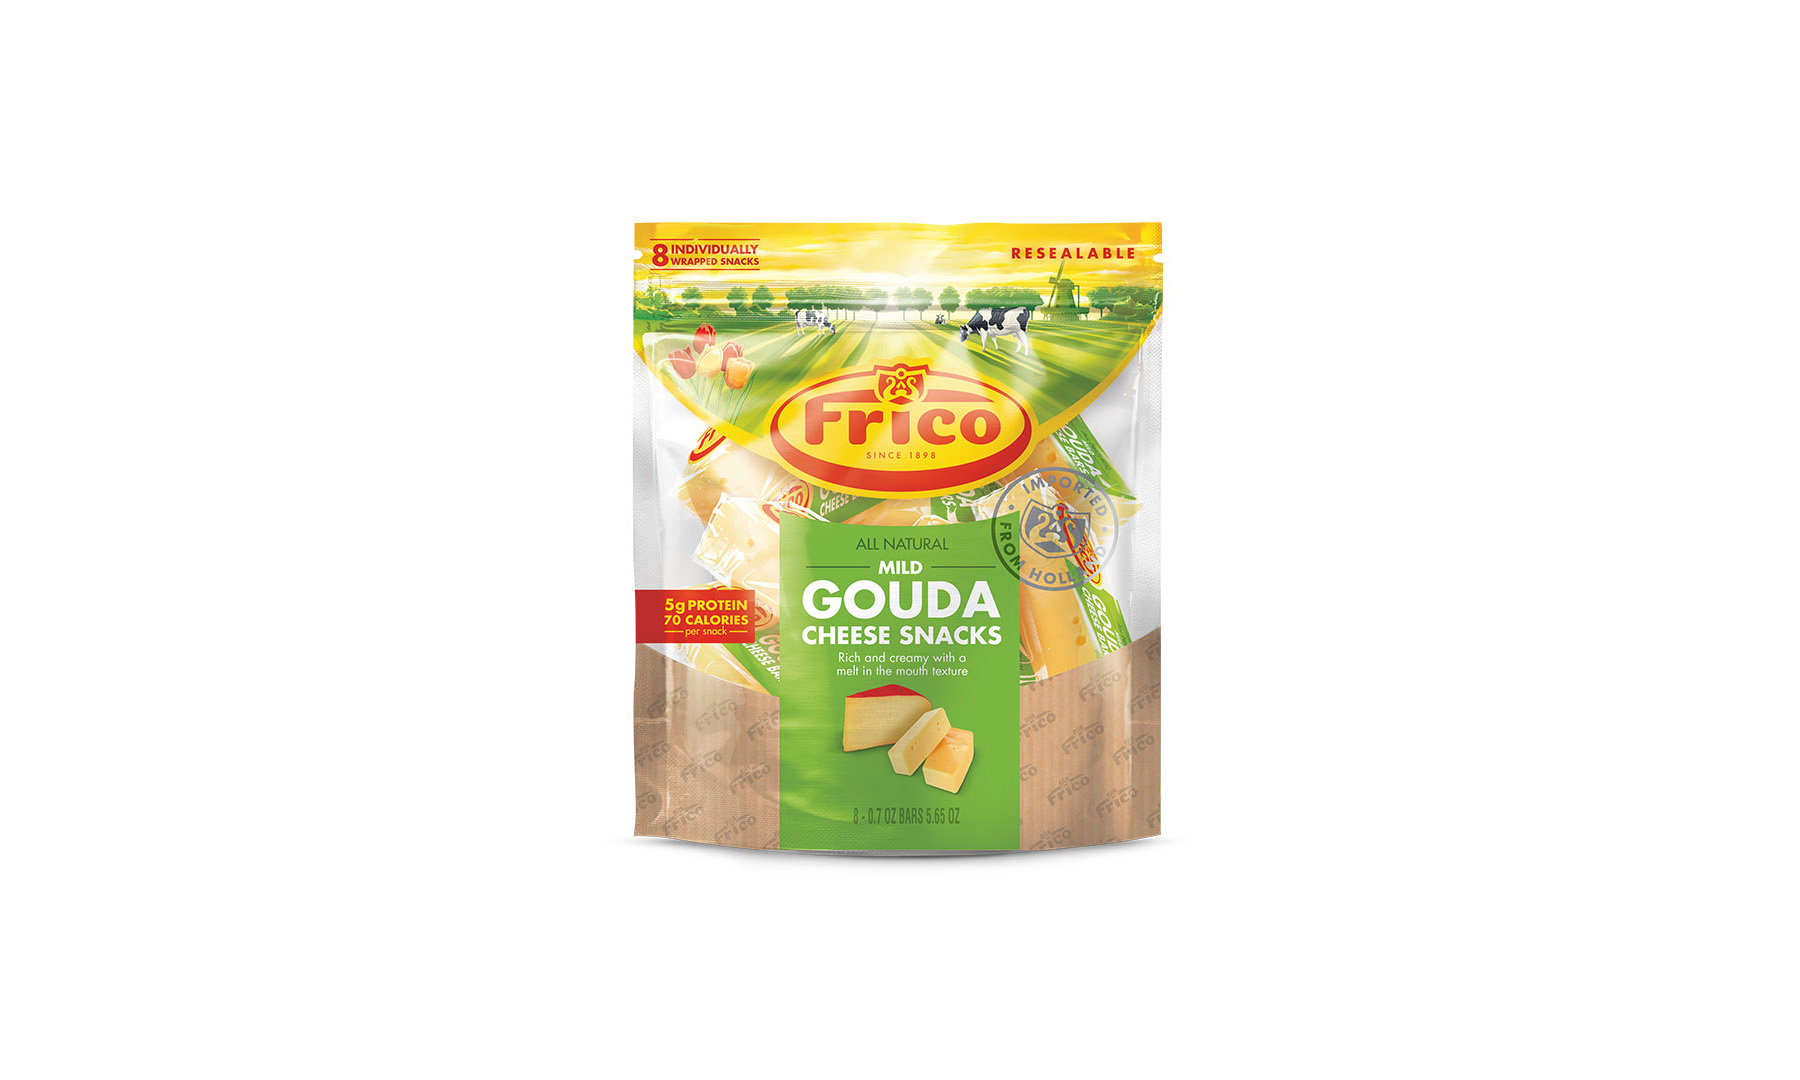 Frico gouda cheese snacks